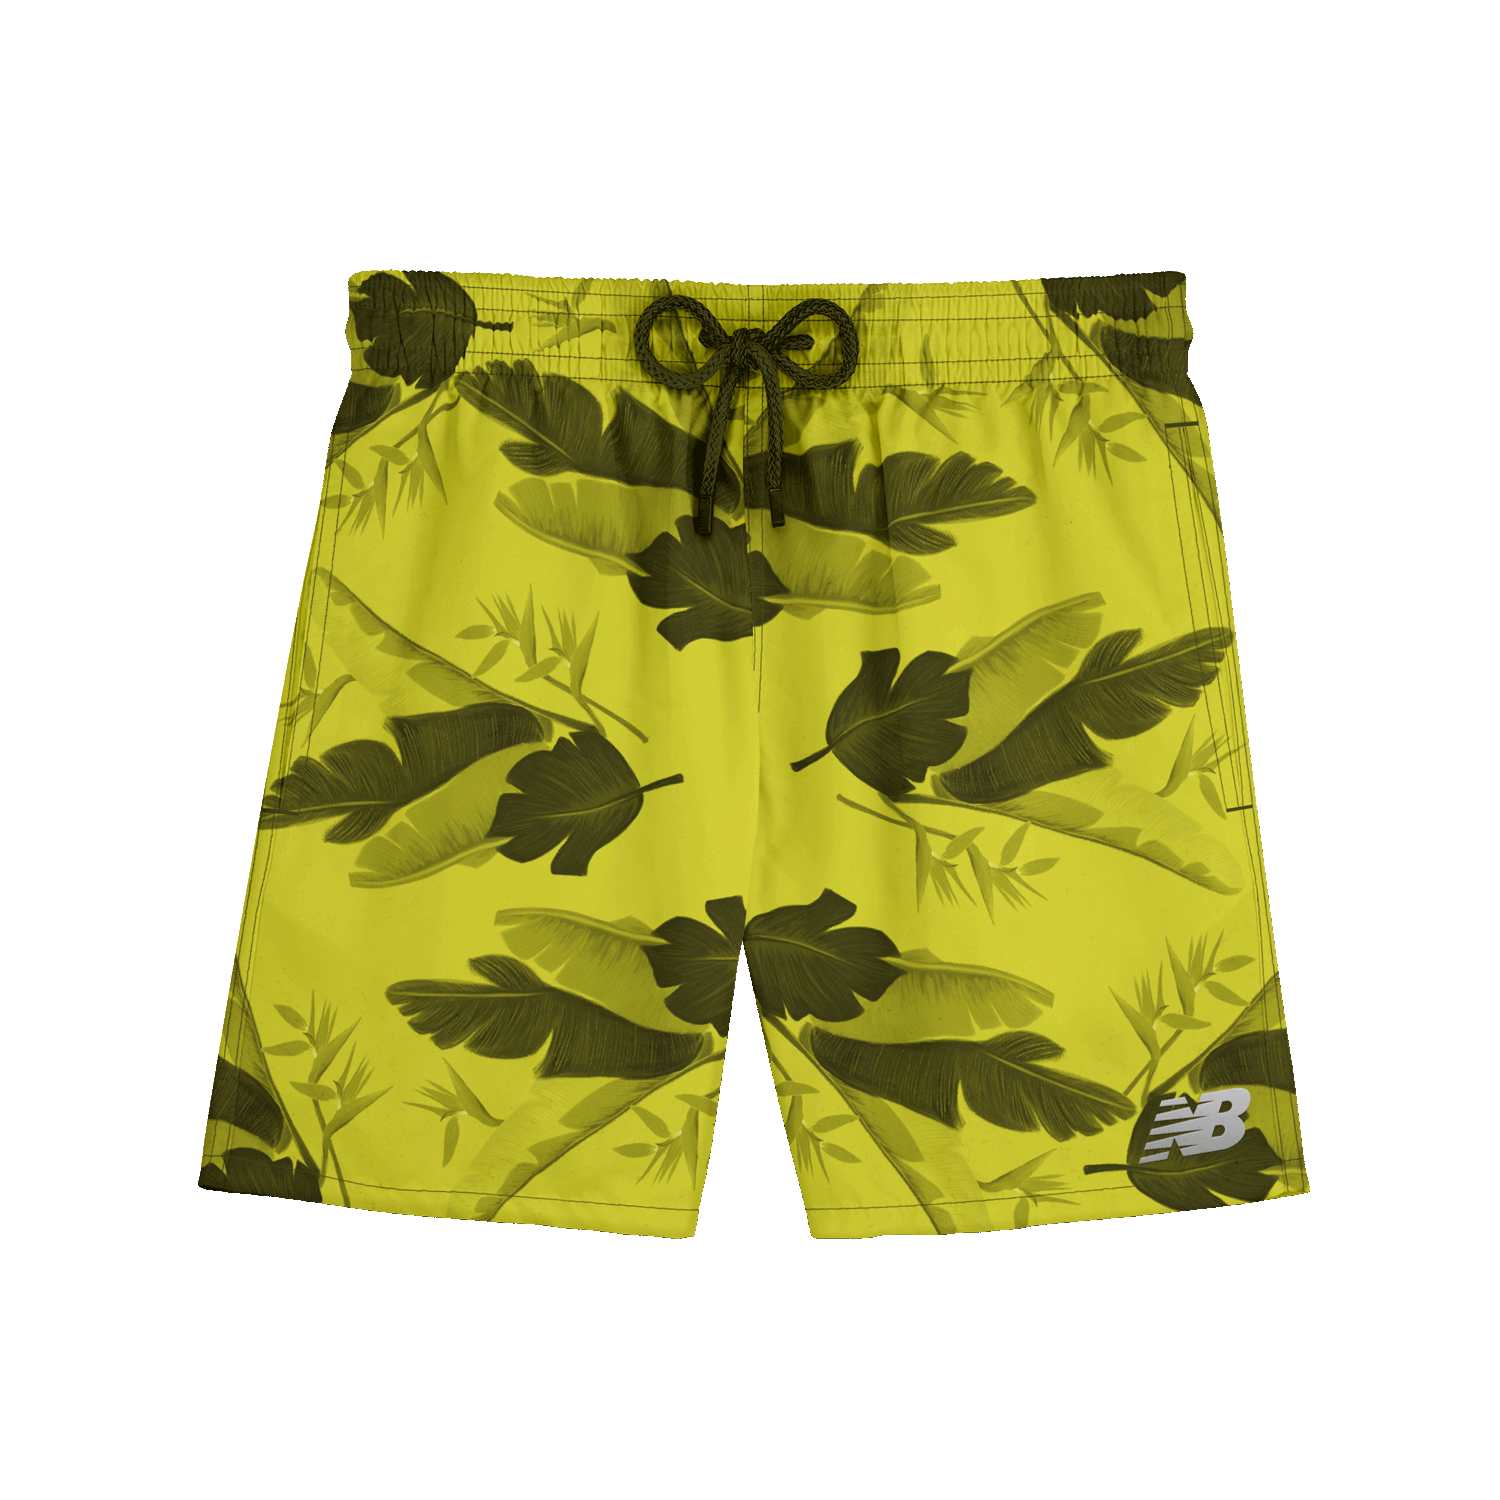 New_Balance_Swimsuits_4.png